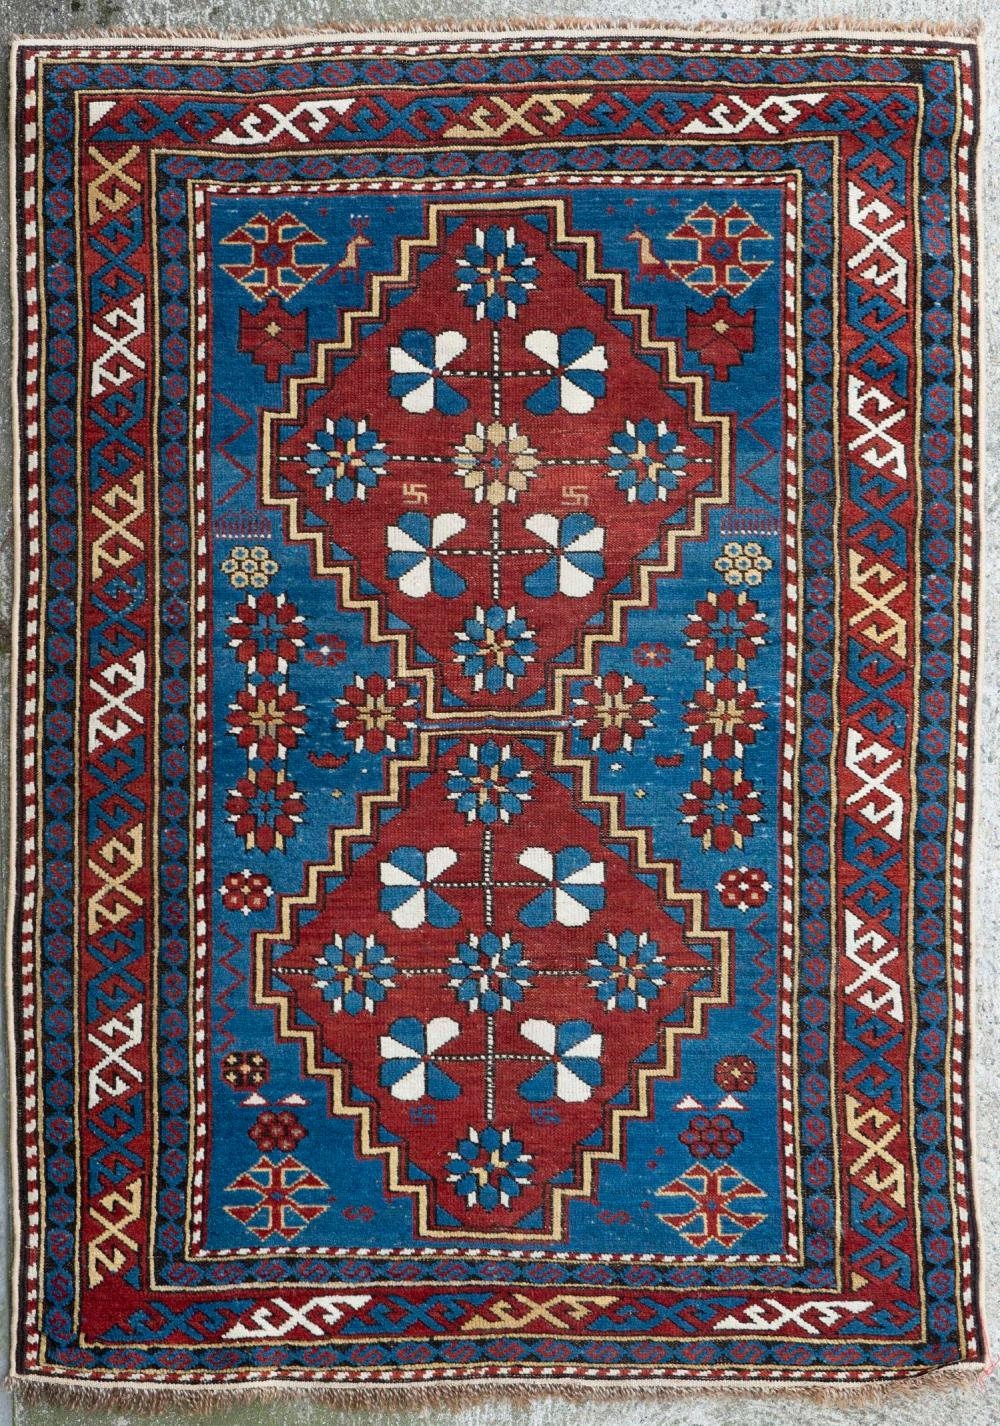 Tapis Style Kilim Caucasian Rugs Carpets For Sale At Online Auction Buy Rare